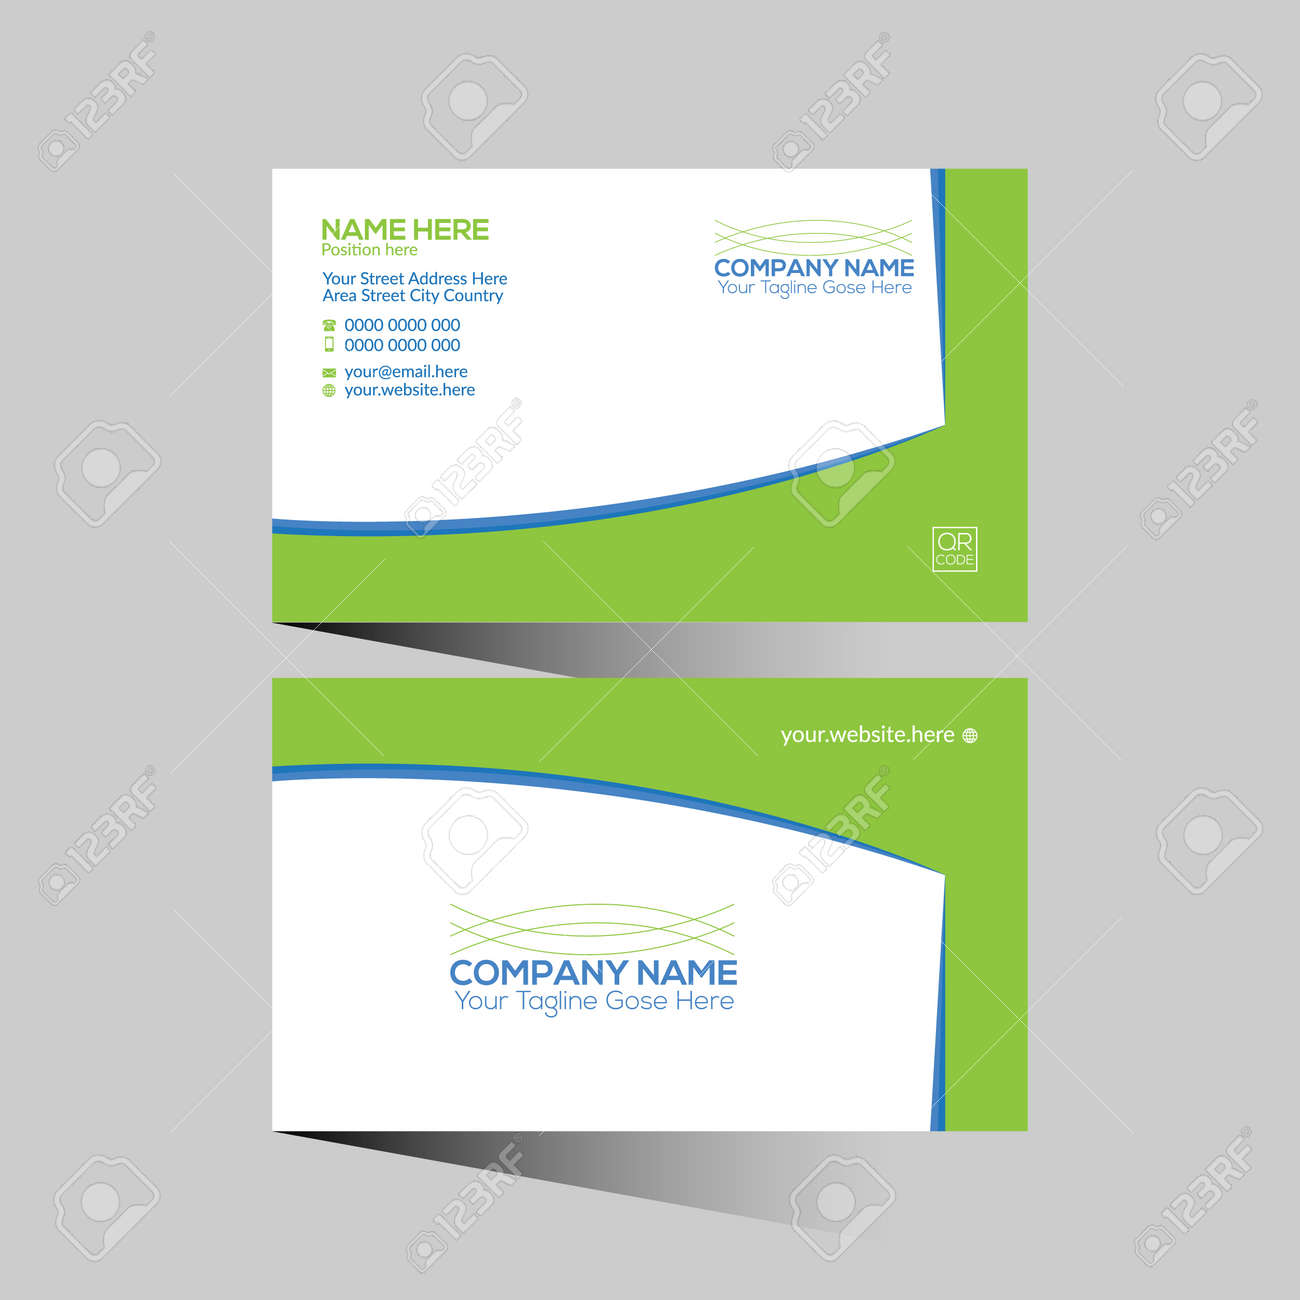 blue and green colored vector business card design for any company use - 172189047